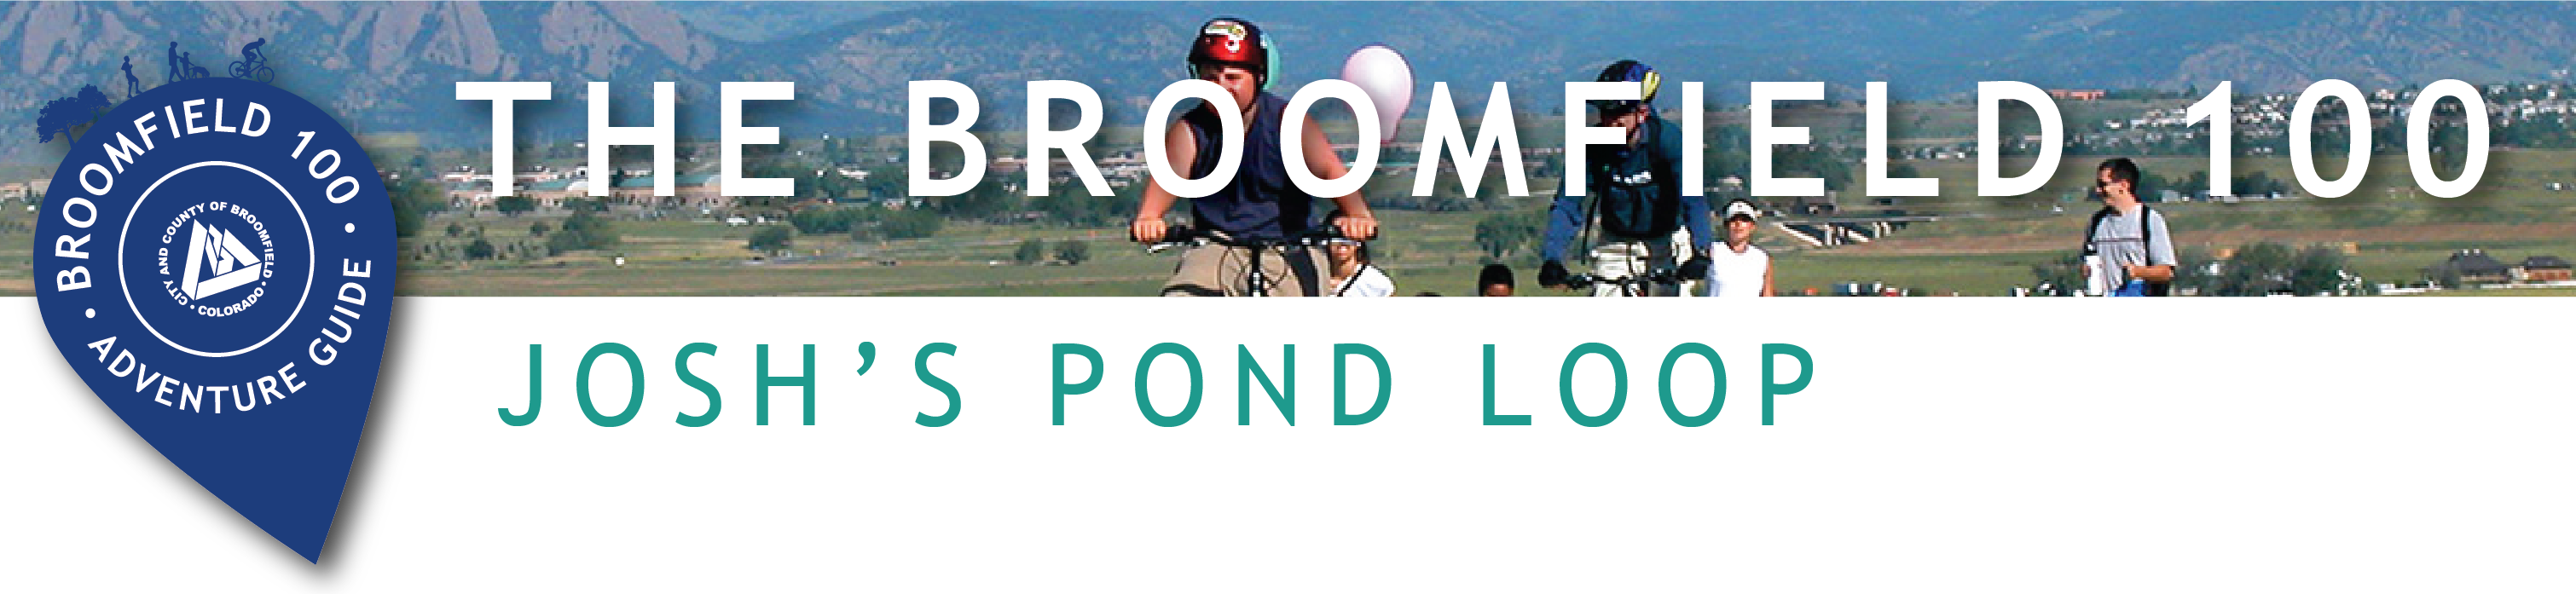 2019 Broomfield100 web banners_joshs pond